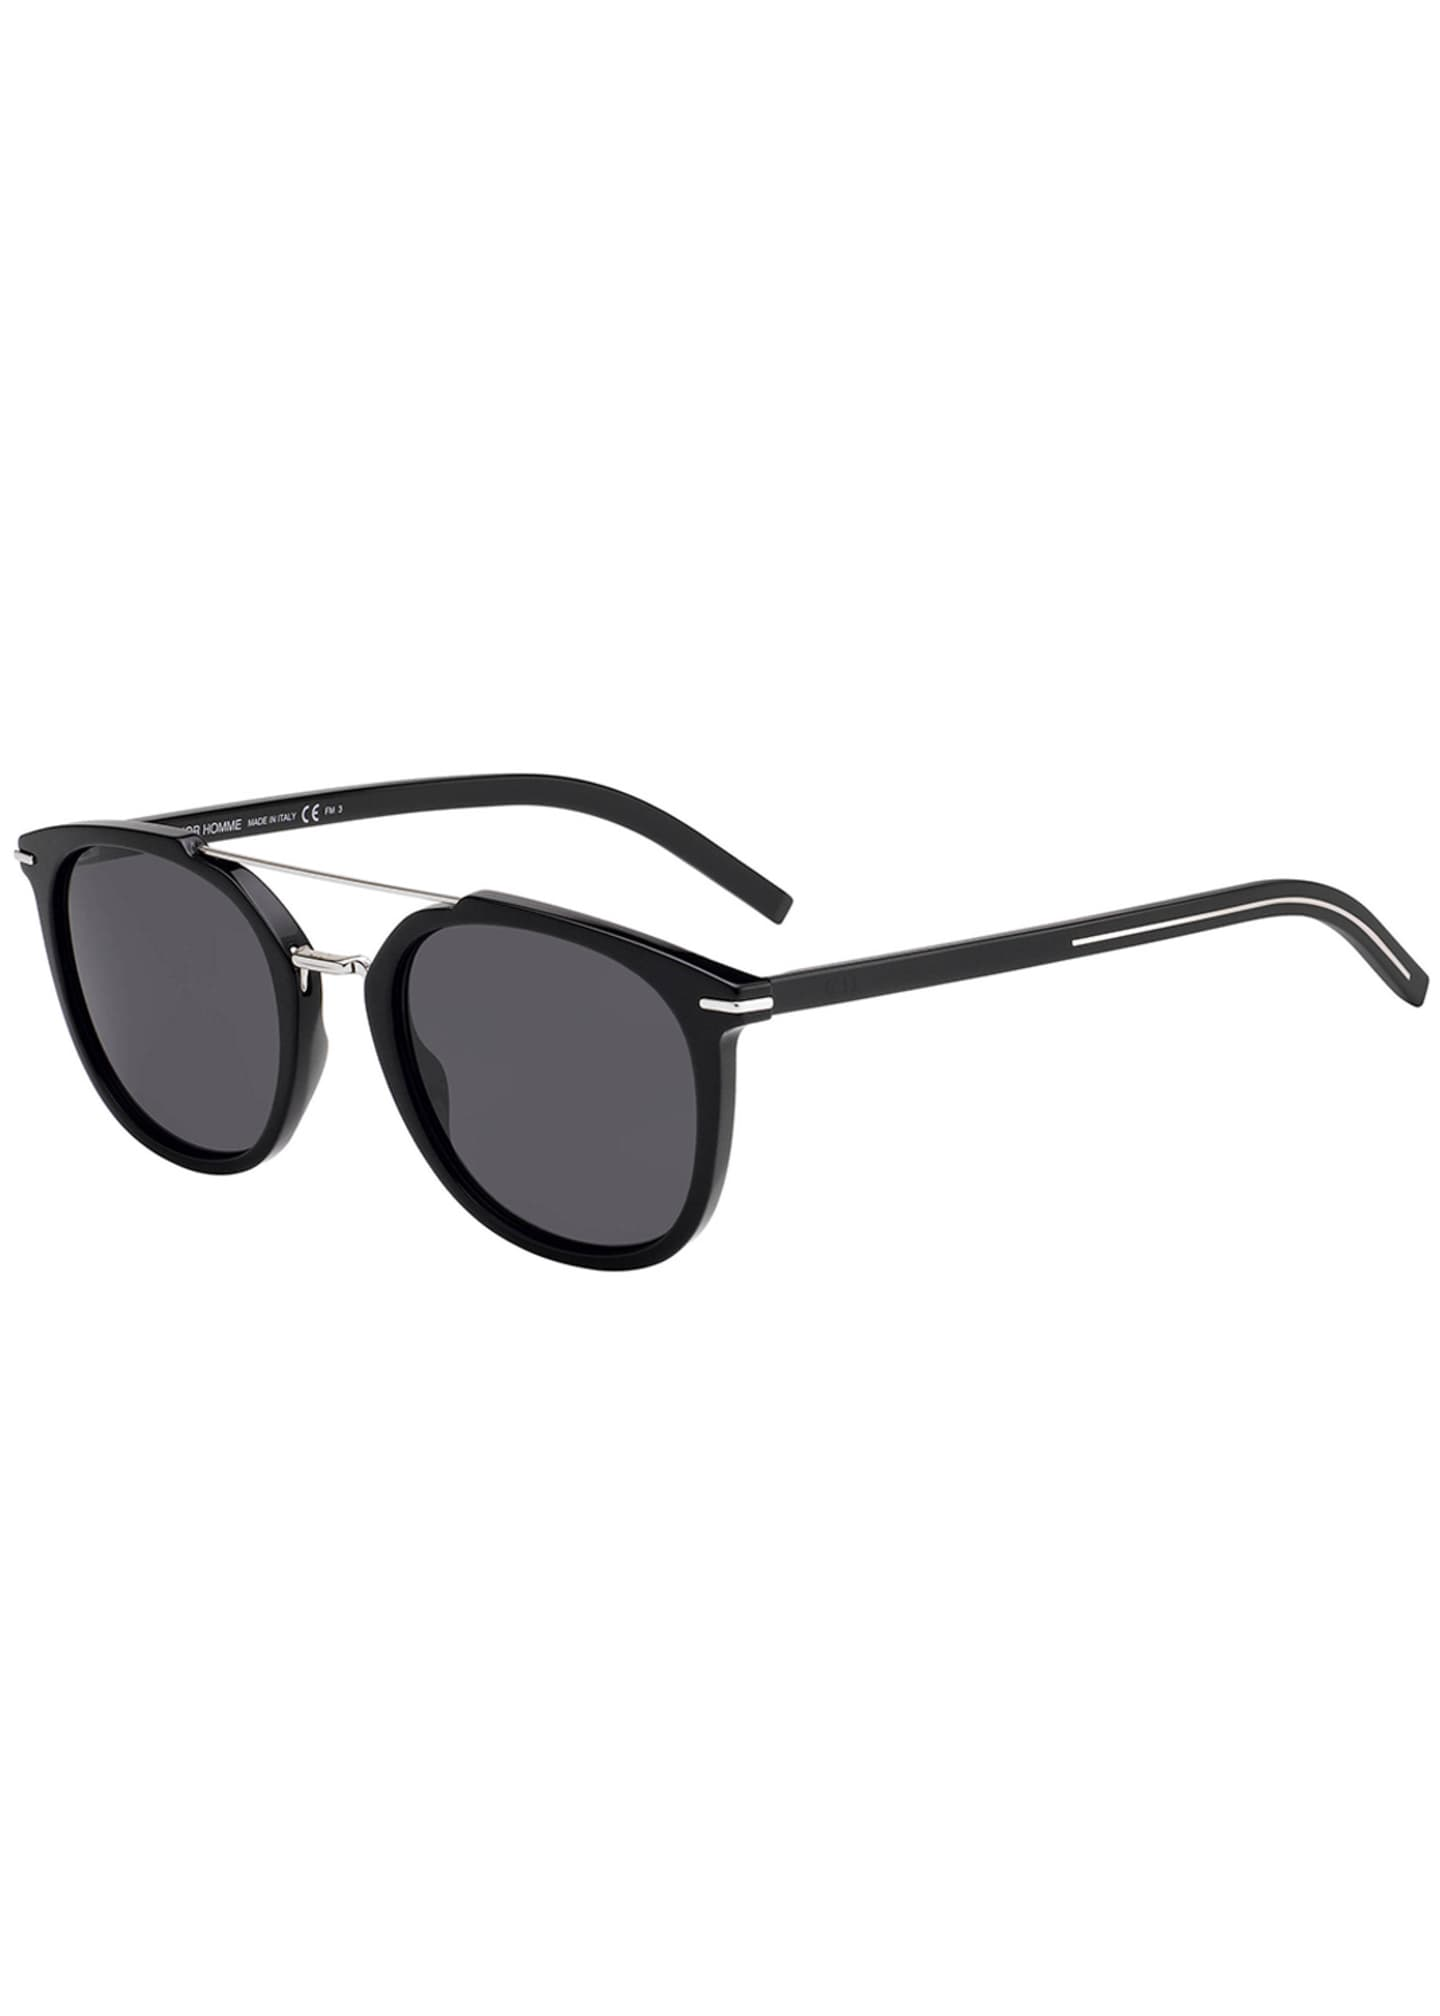 Image 1 of 1: Men's Blacktie Round Acetate/Metal Sunglasses